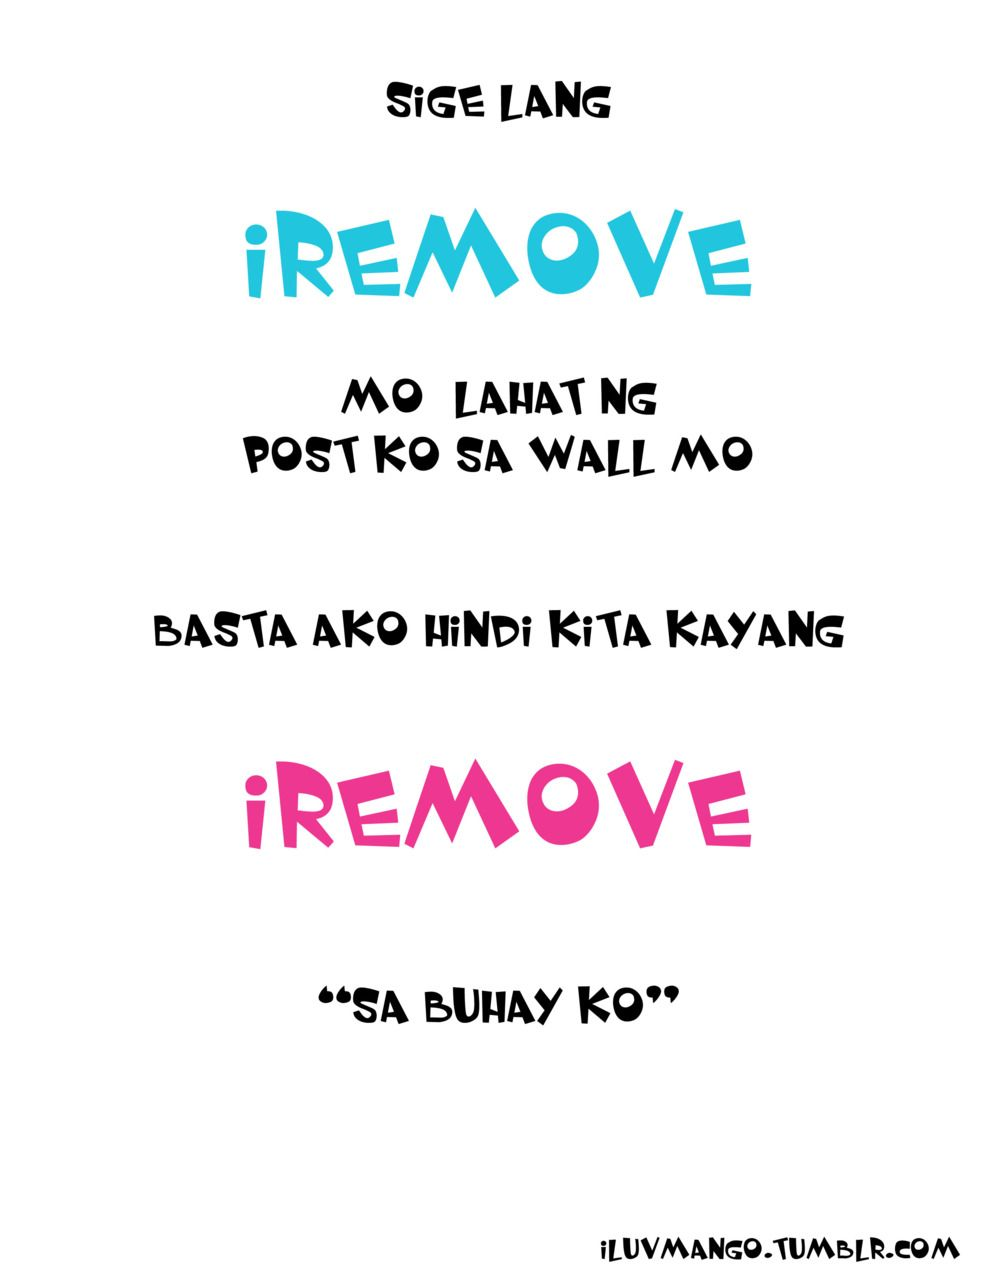 Attractive Love Quotes Tagalog Tumblr Sad Quotes For Tumblr Sad Love Quotes Tagalog